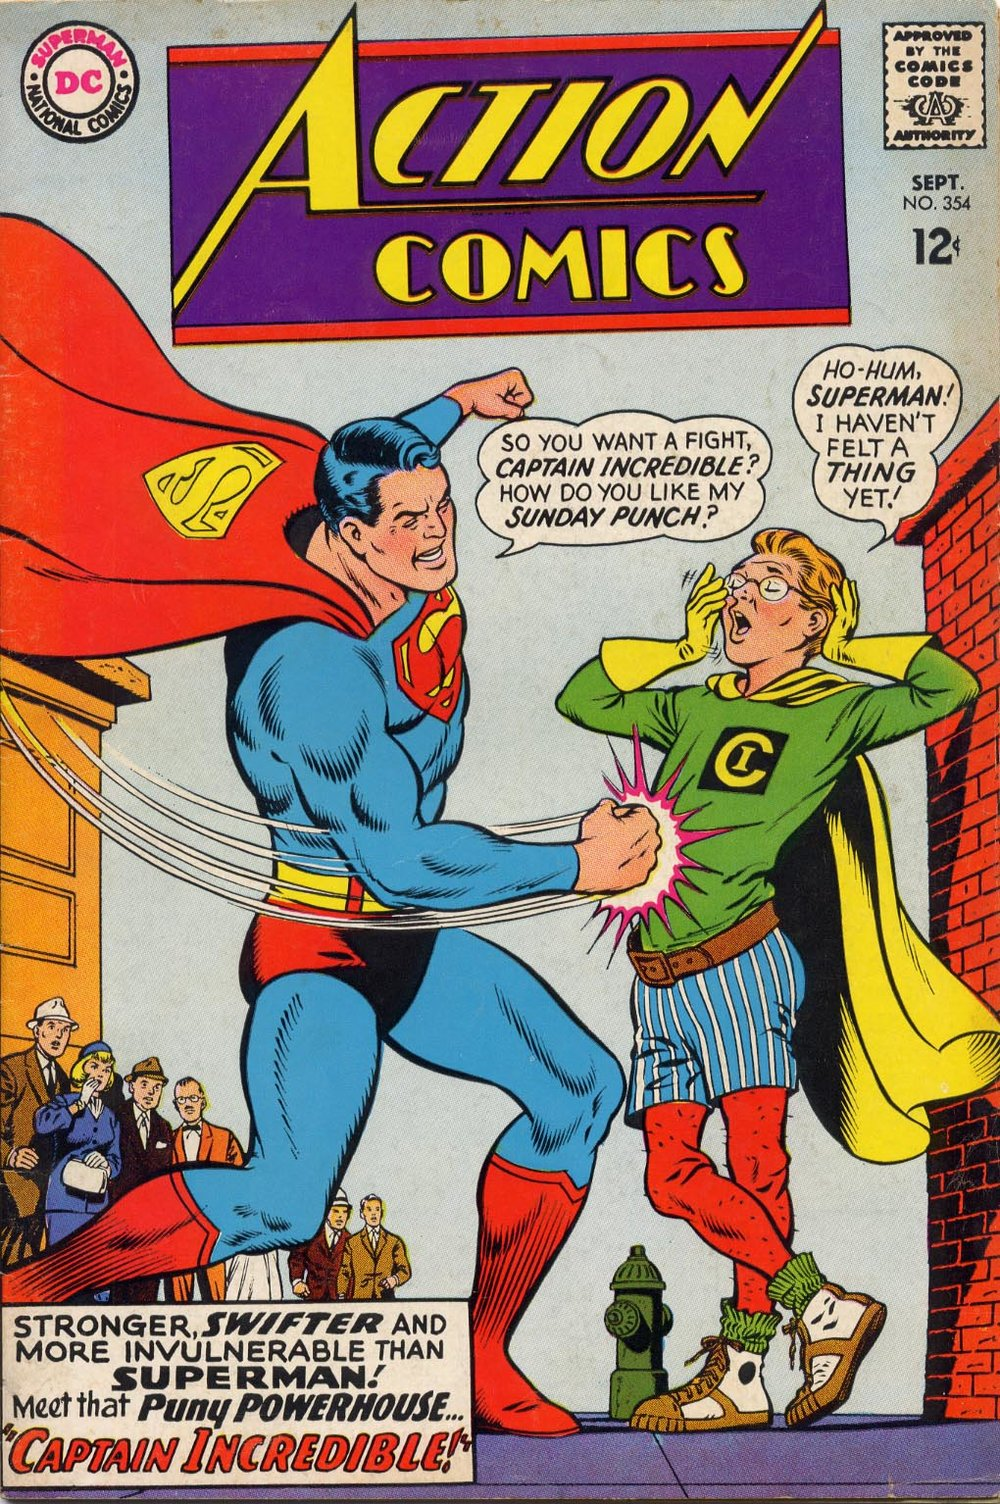 Action Comics (1938) #354, written by Cary Bates. Cover by Curt Swan.